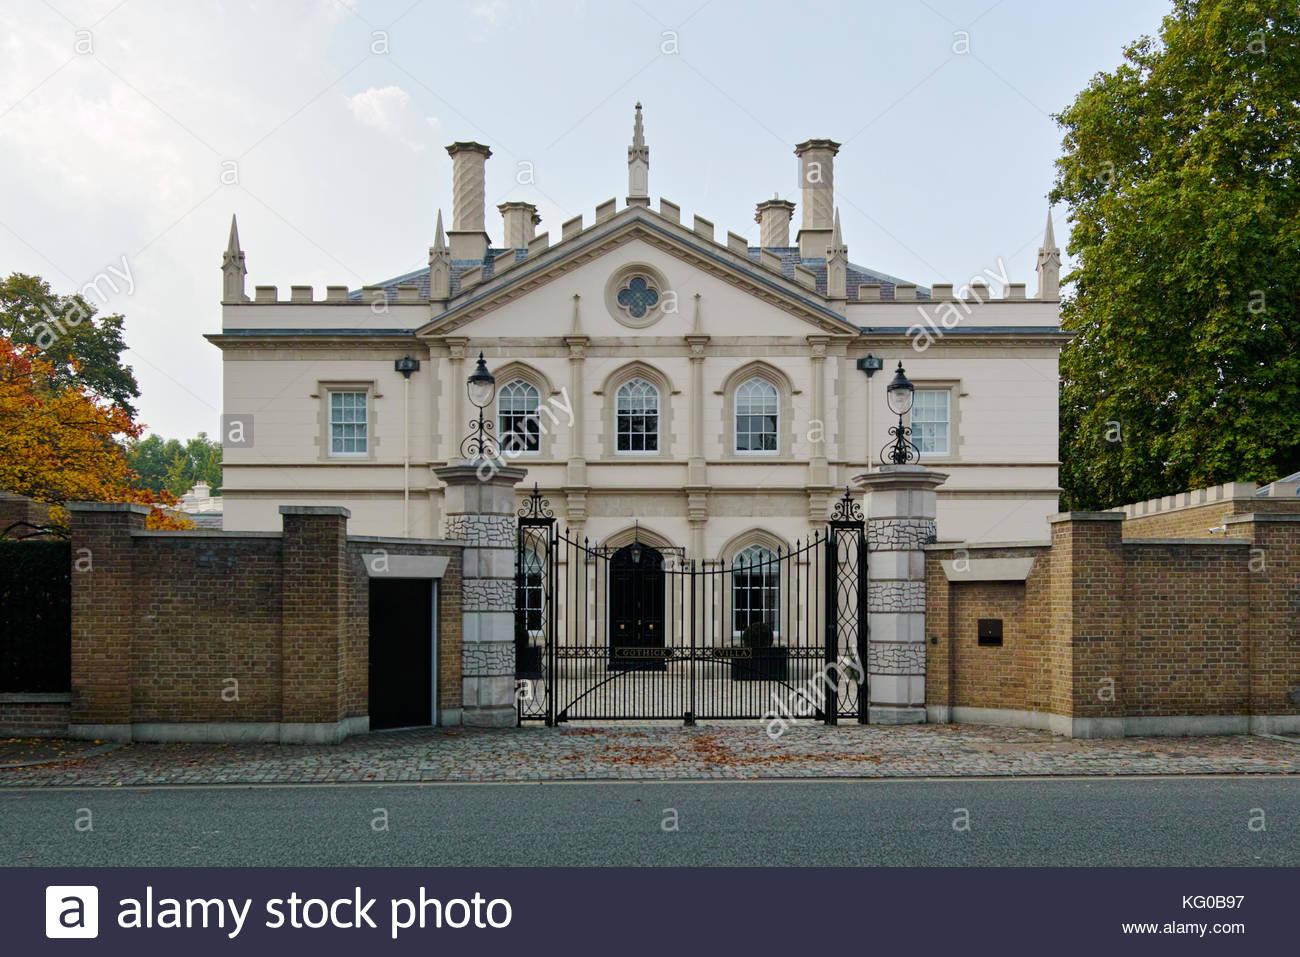 Gothick stock photos gothick stock images alamy Gothick villa regent s park